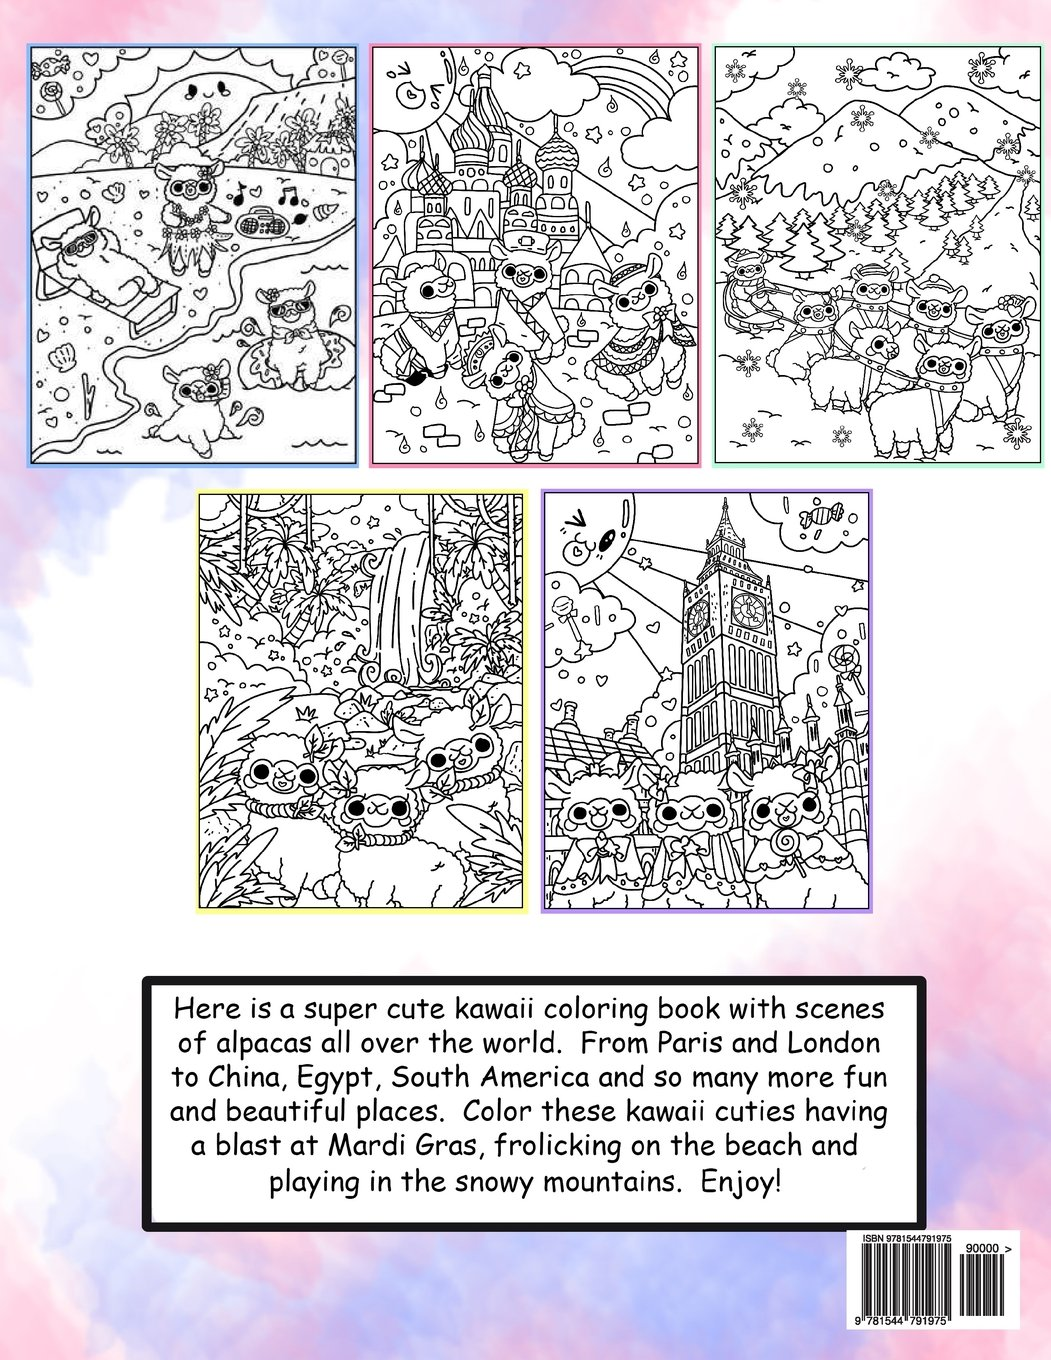 kawaii alpacas all around the world a super cute coloring book for adults kawaii manga and anime coloring books for adults teens and tweens volume - Kawaii Coloring Book